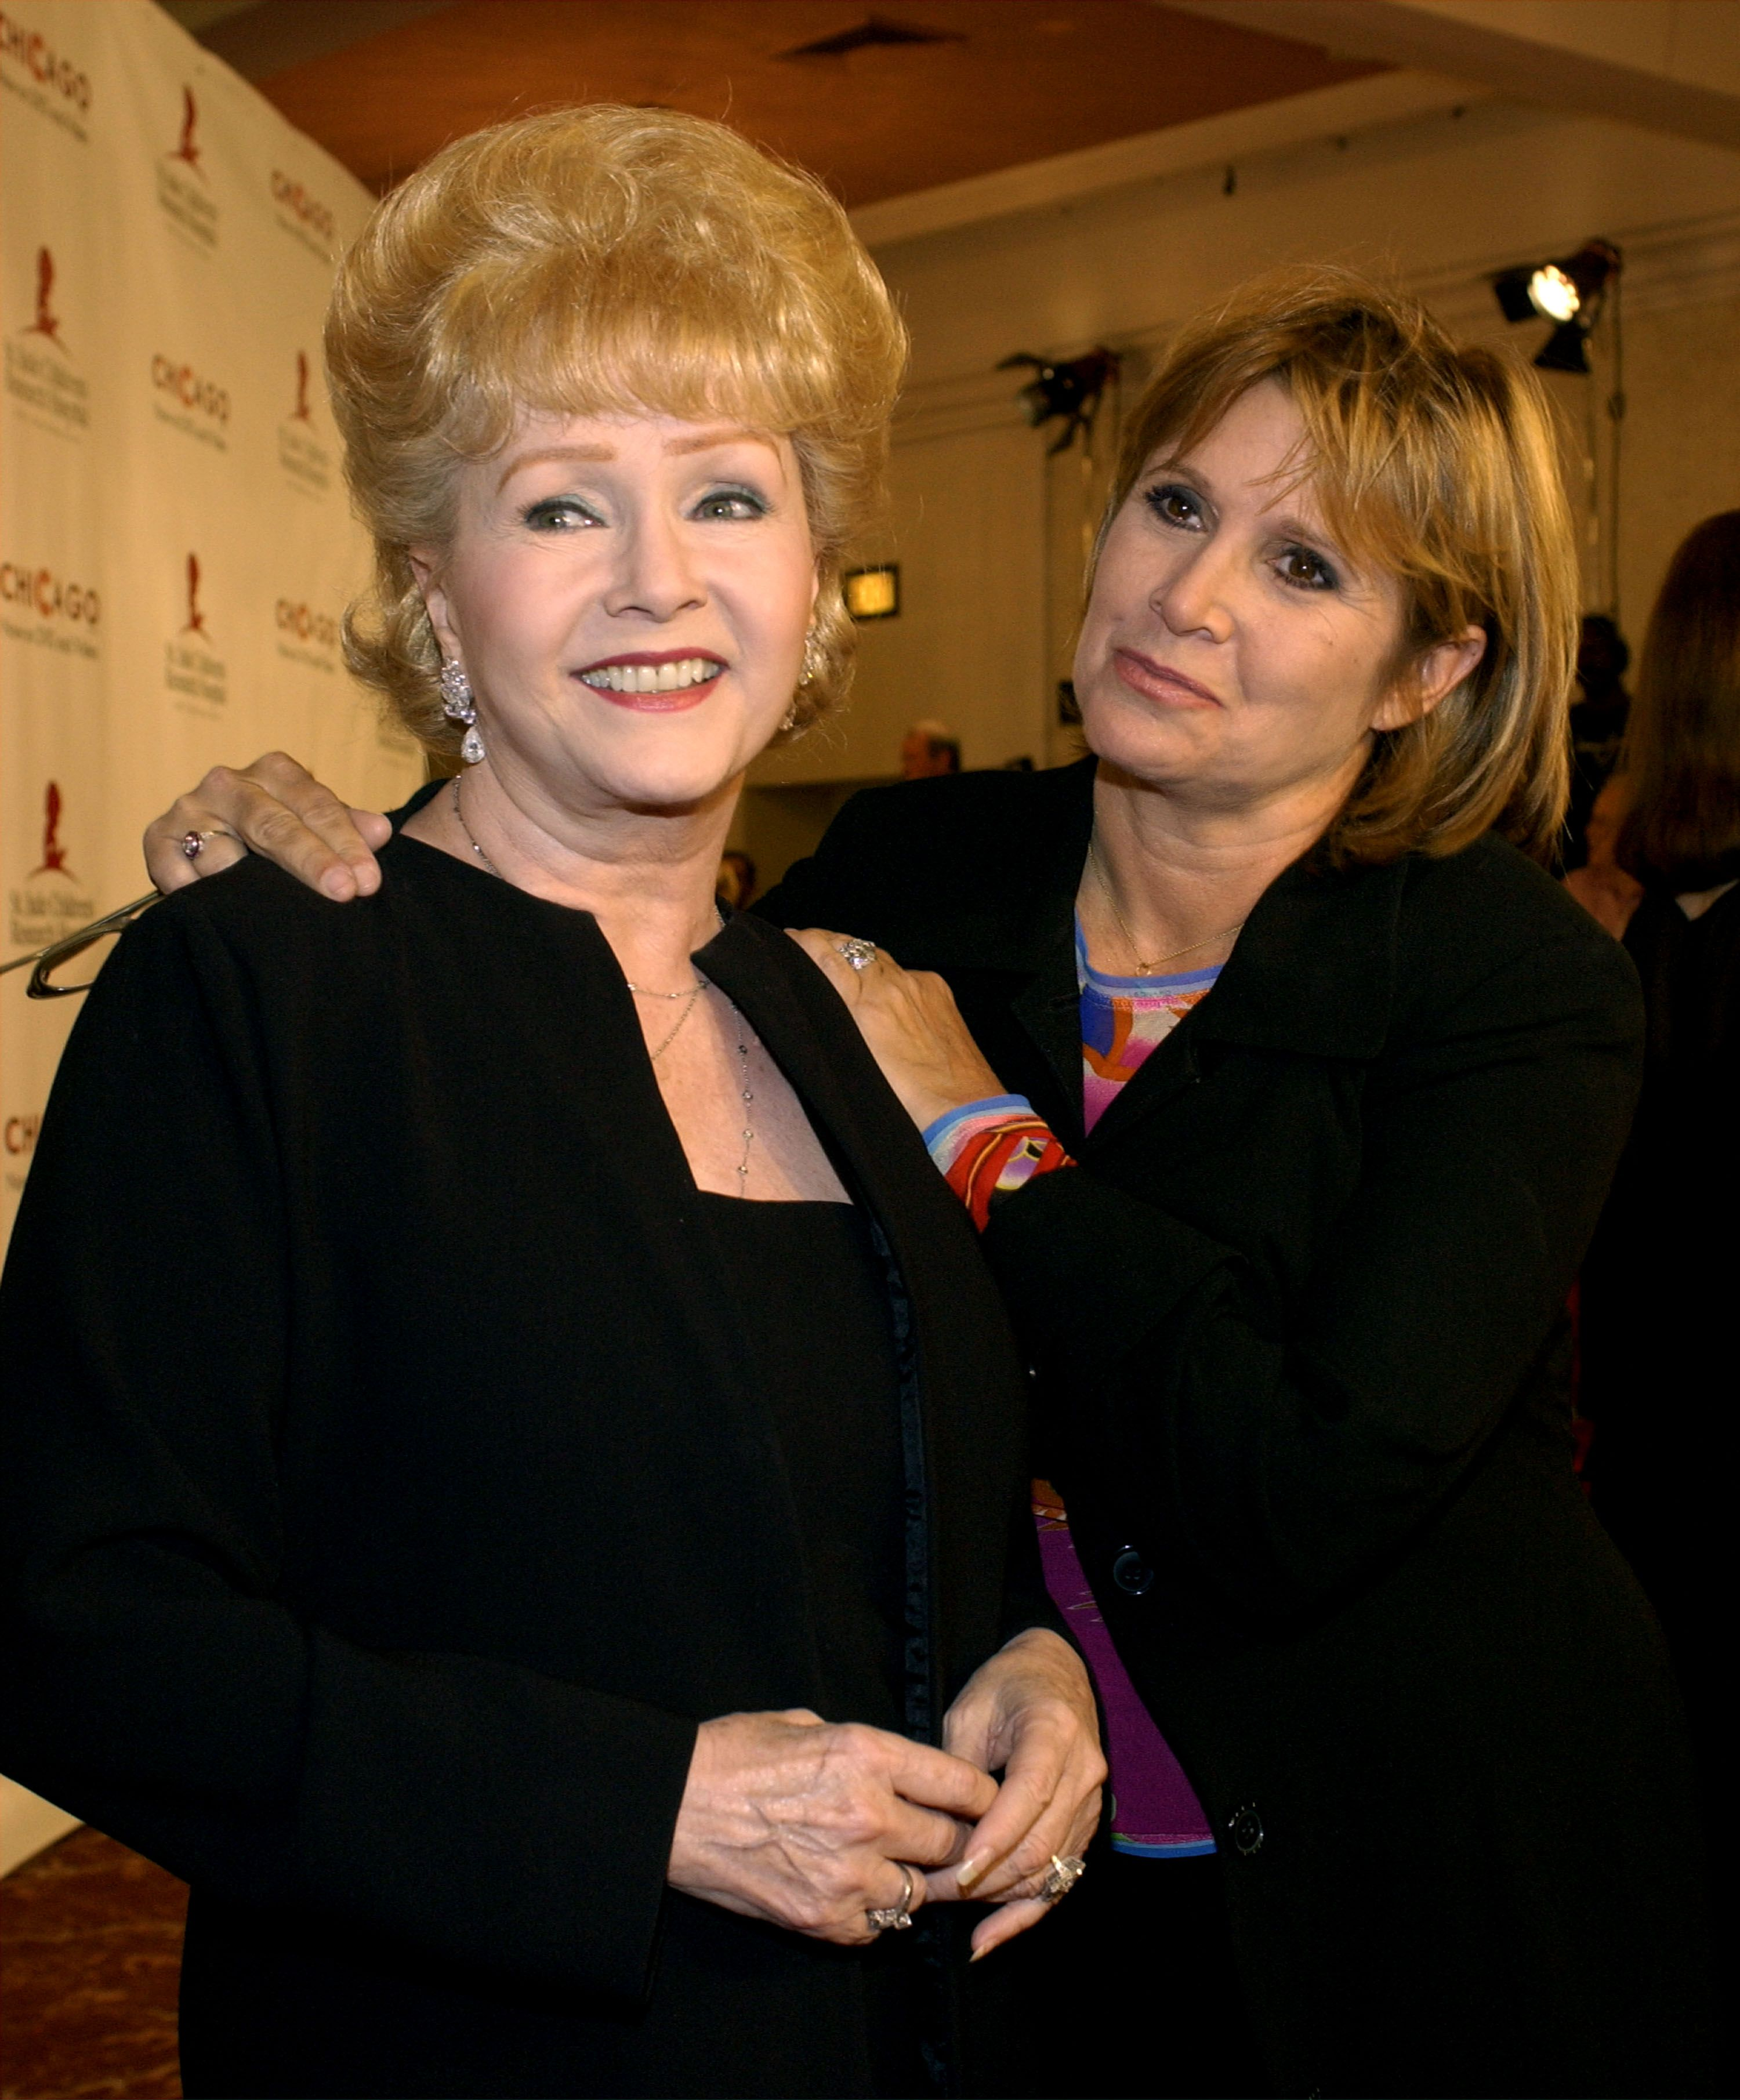 """Debbie Reynolds and Carrie Fisher at the 2nd Annual """"Runway for Life"""" celebrity fashion show at the Beverly Hilton August 19, 2003 